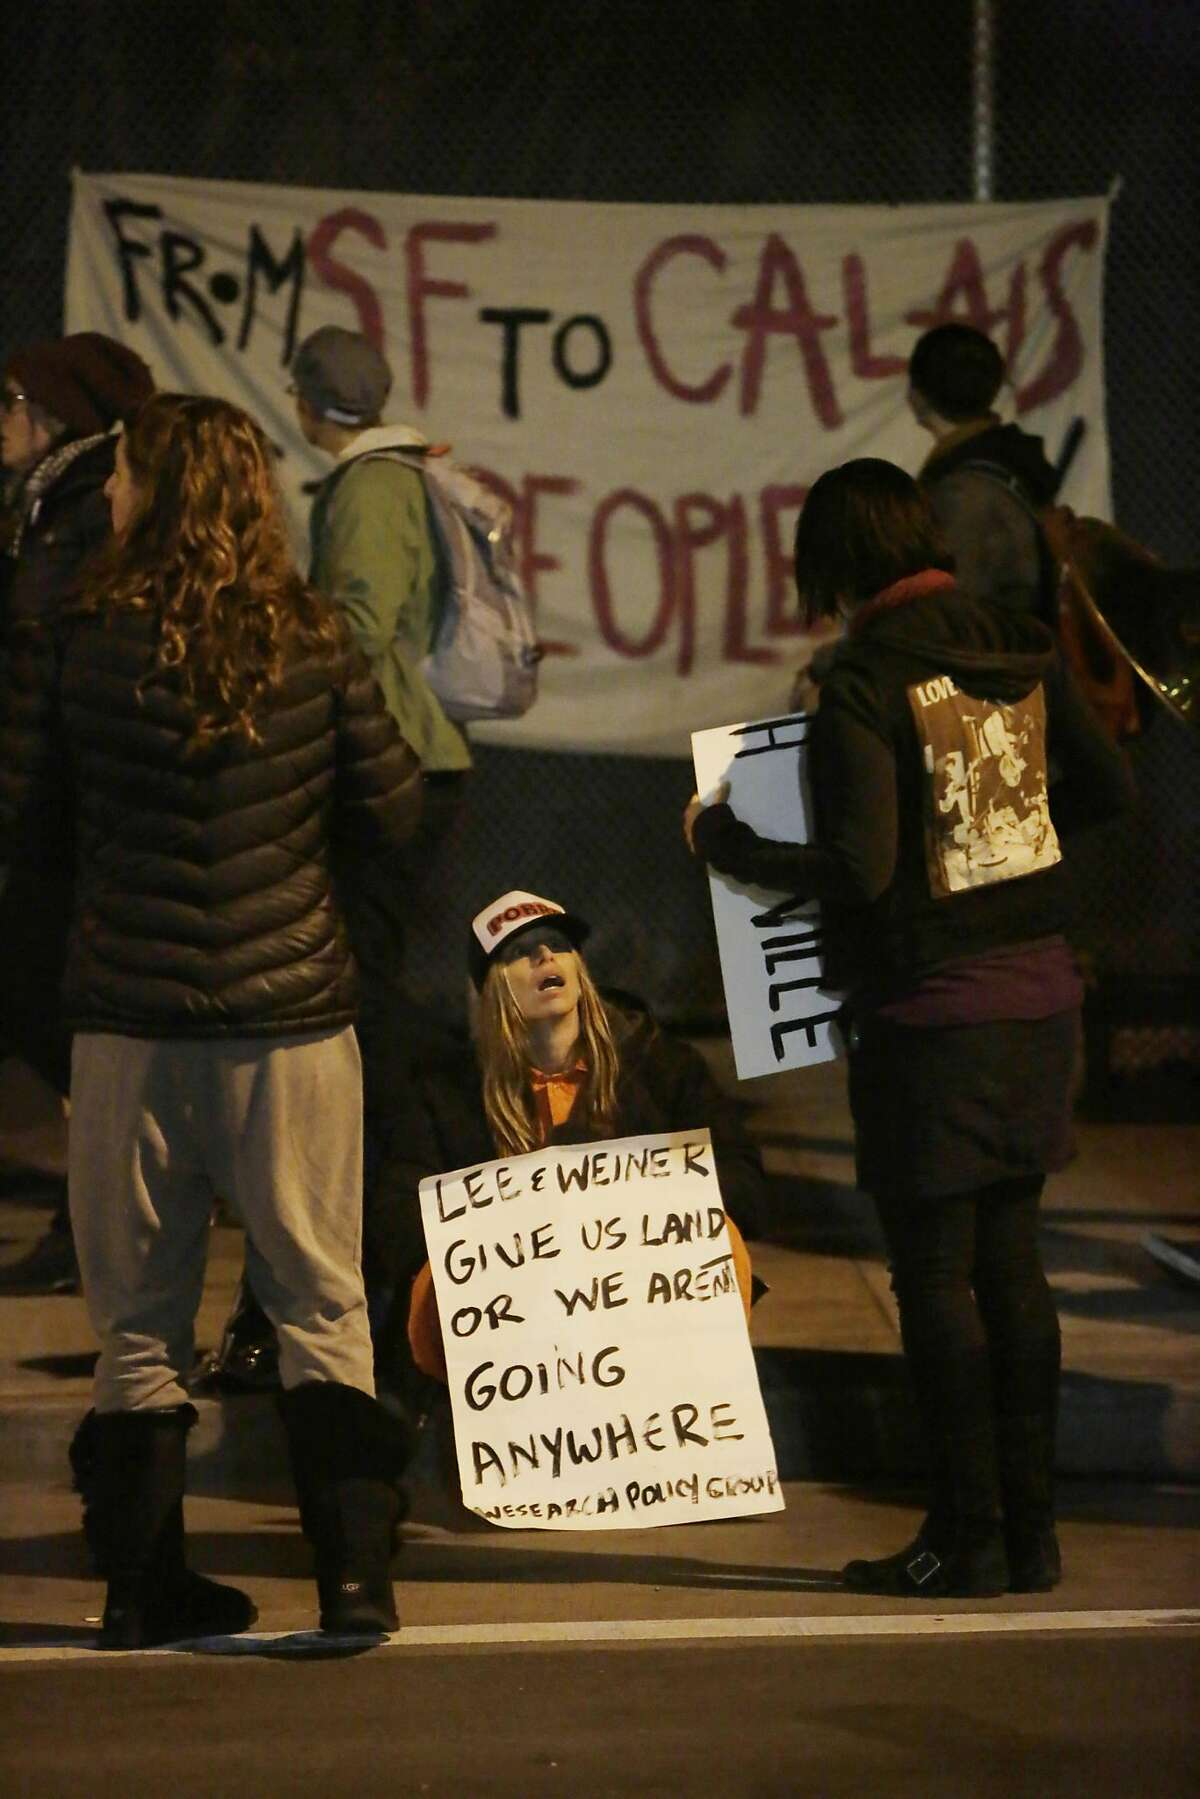 Homeless supporters hold signs along 13th Street during a vigil in the early morning on Friday, February 26, 2016 in San Francisco, California.